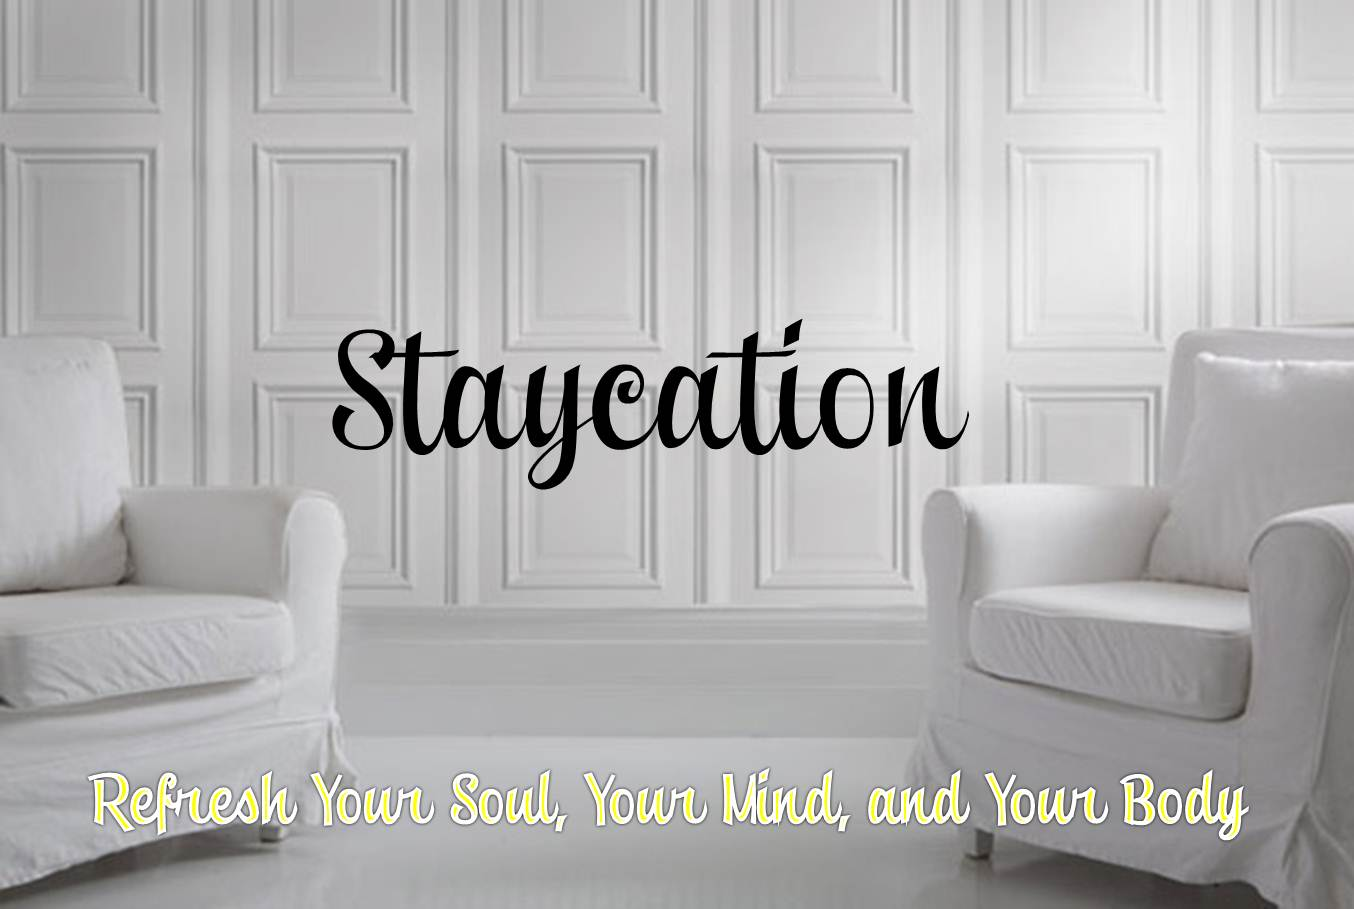 It's Time to Staycation!